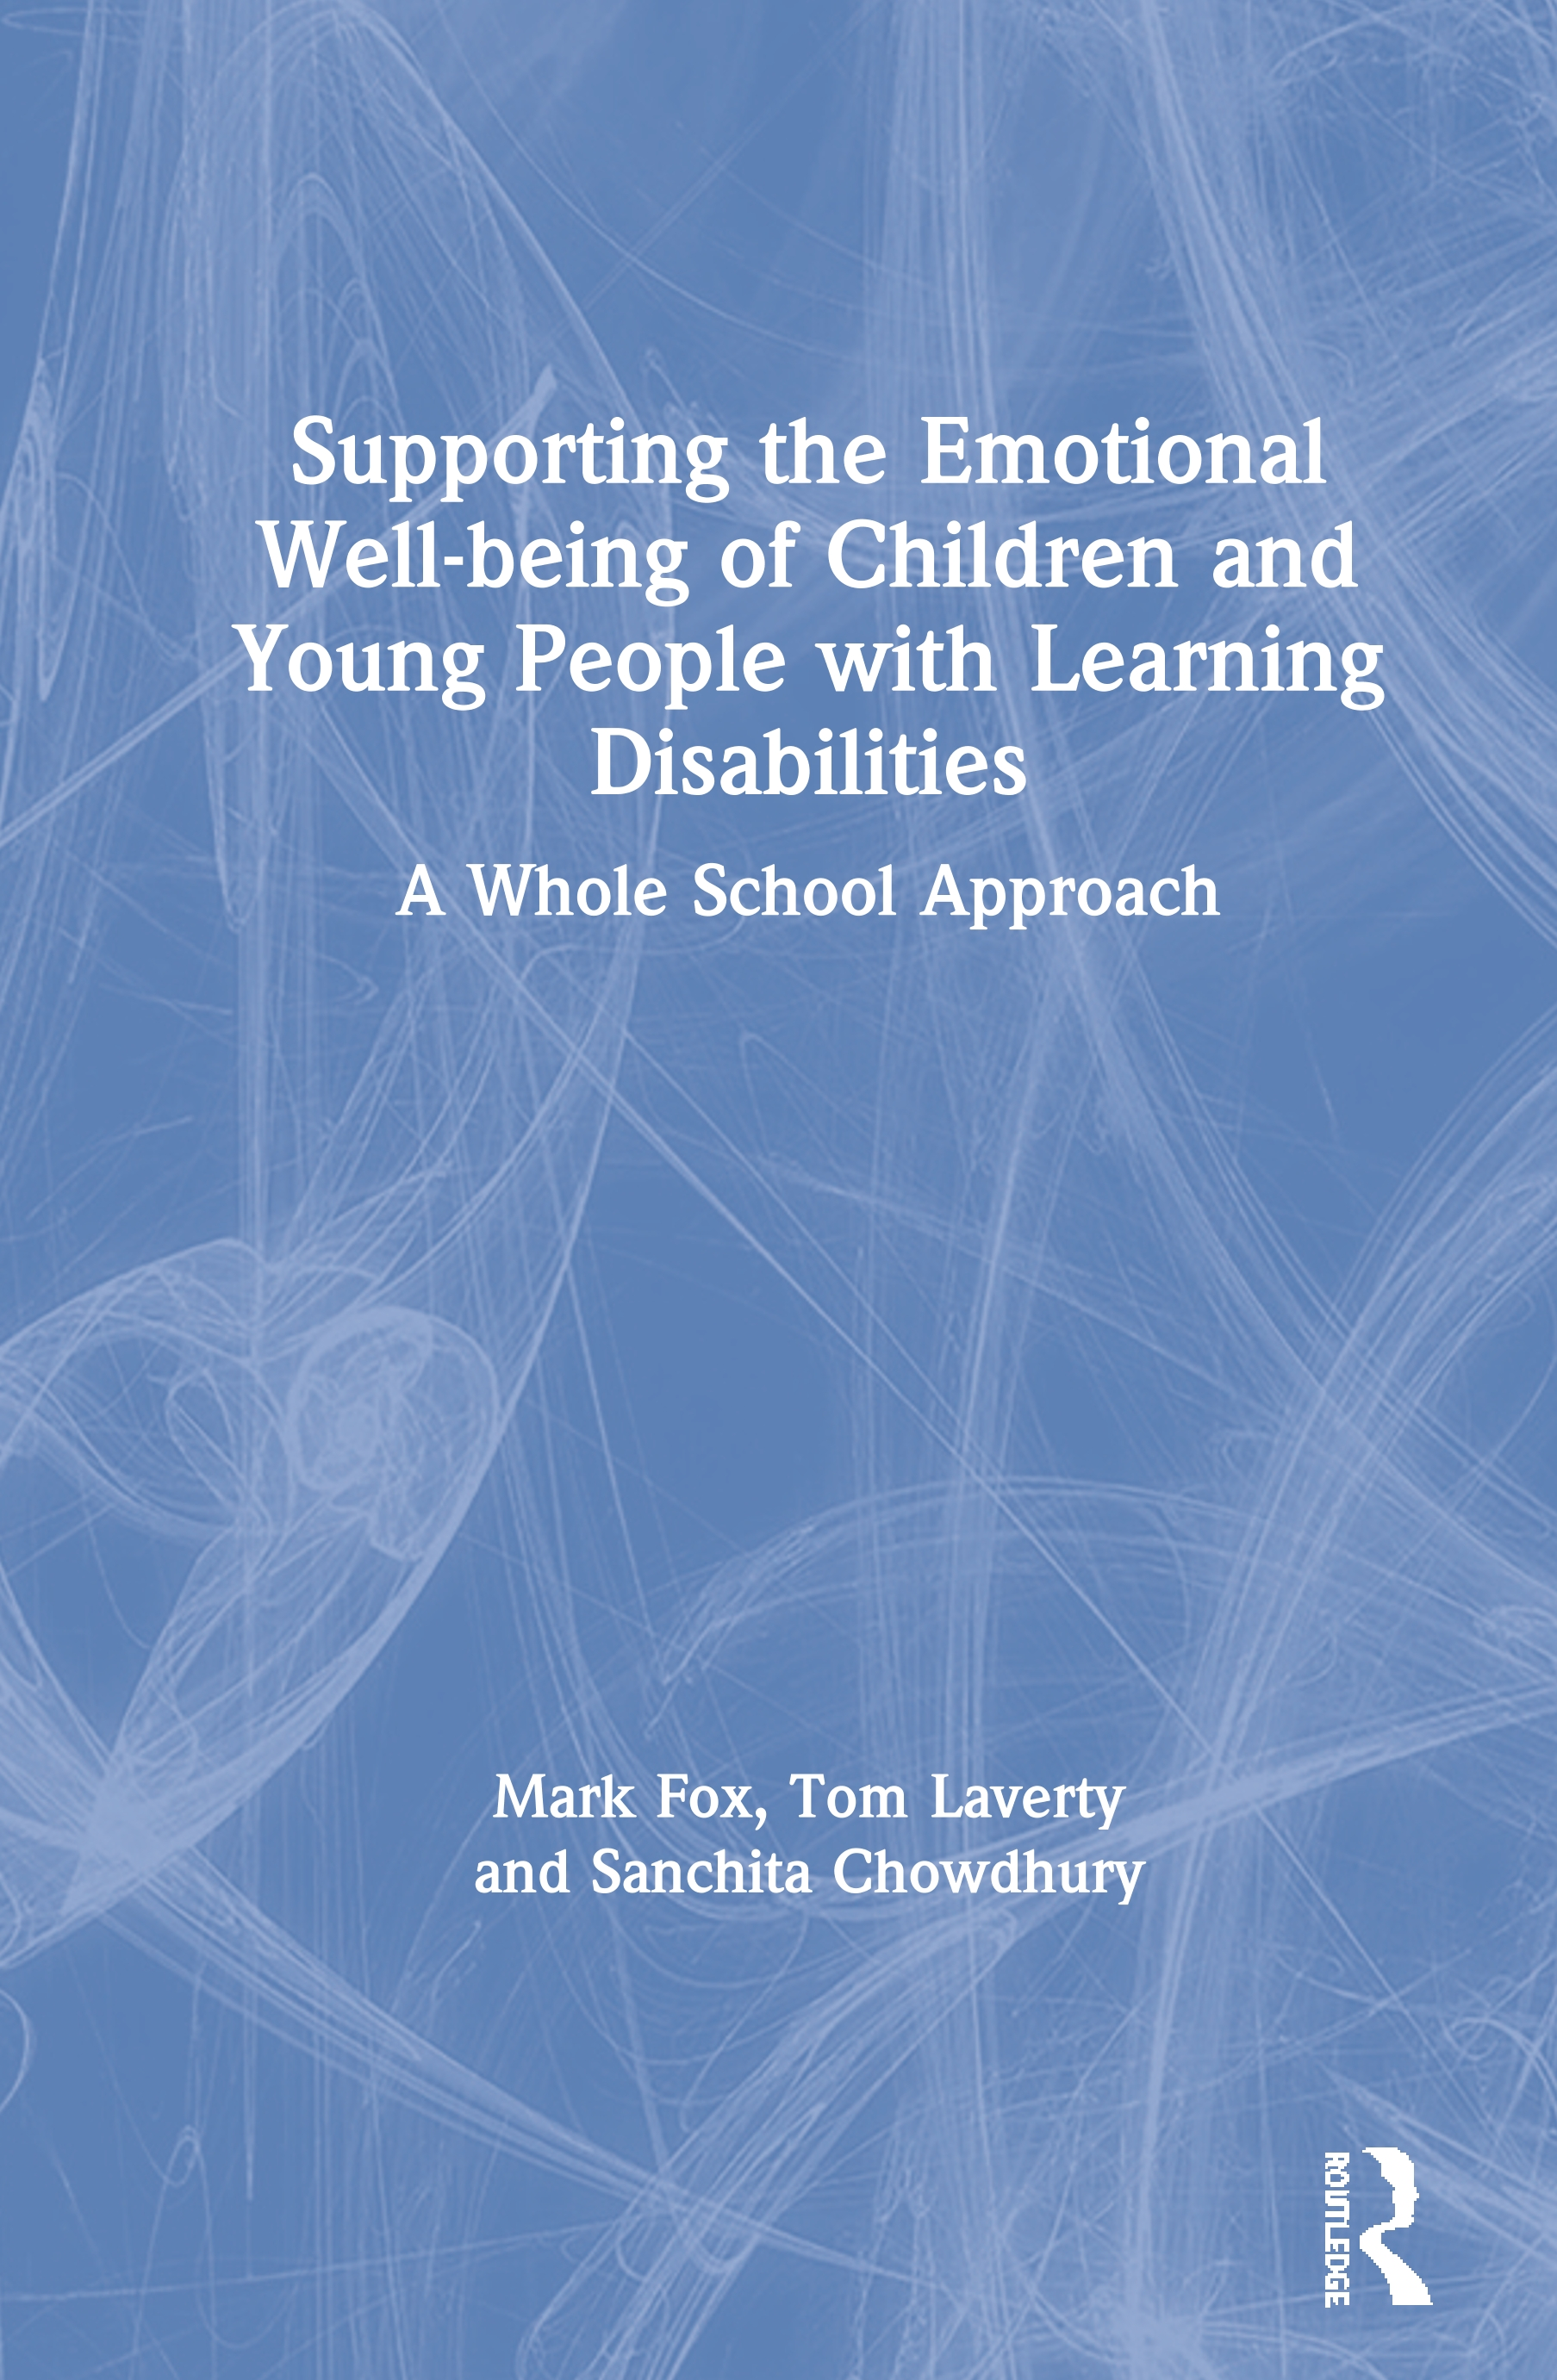 Supporting the Emotional Well-being of Children and Young People with Learning Disabilities: A Whole School Approach book cover